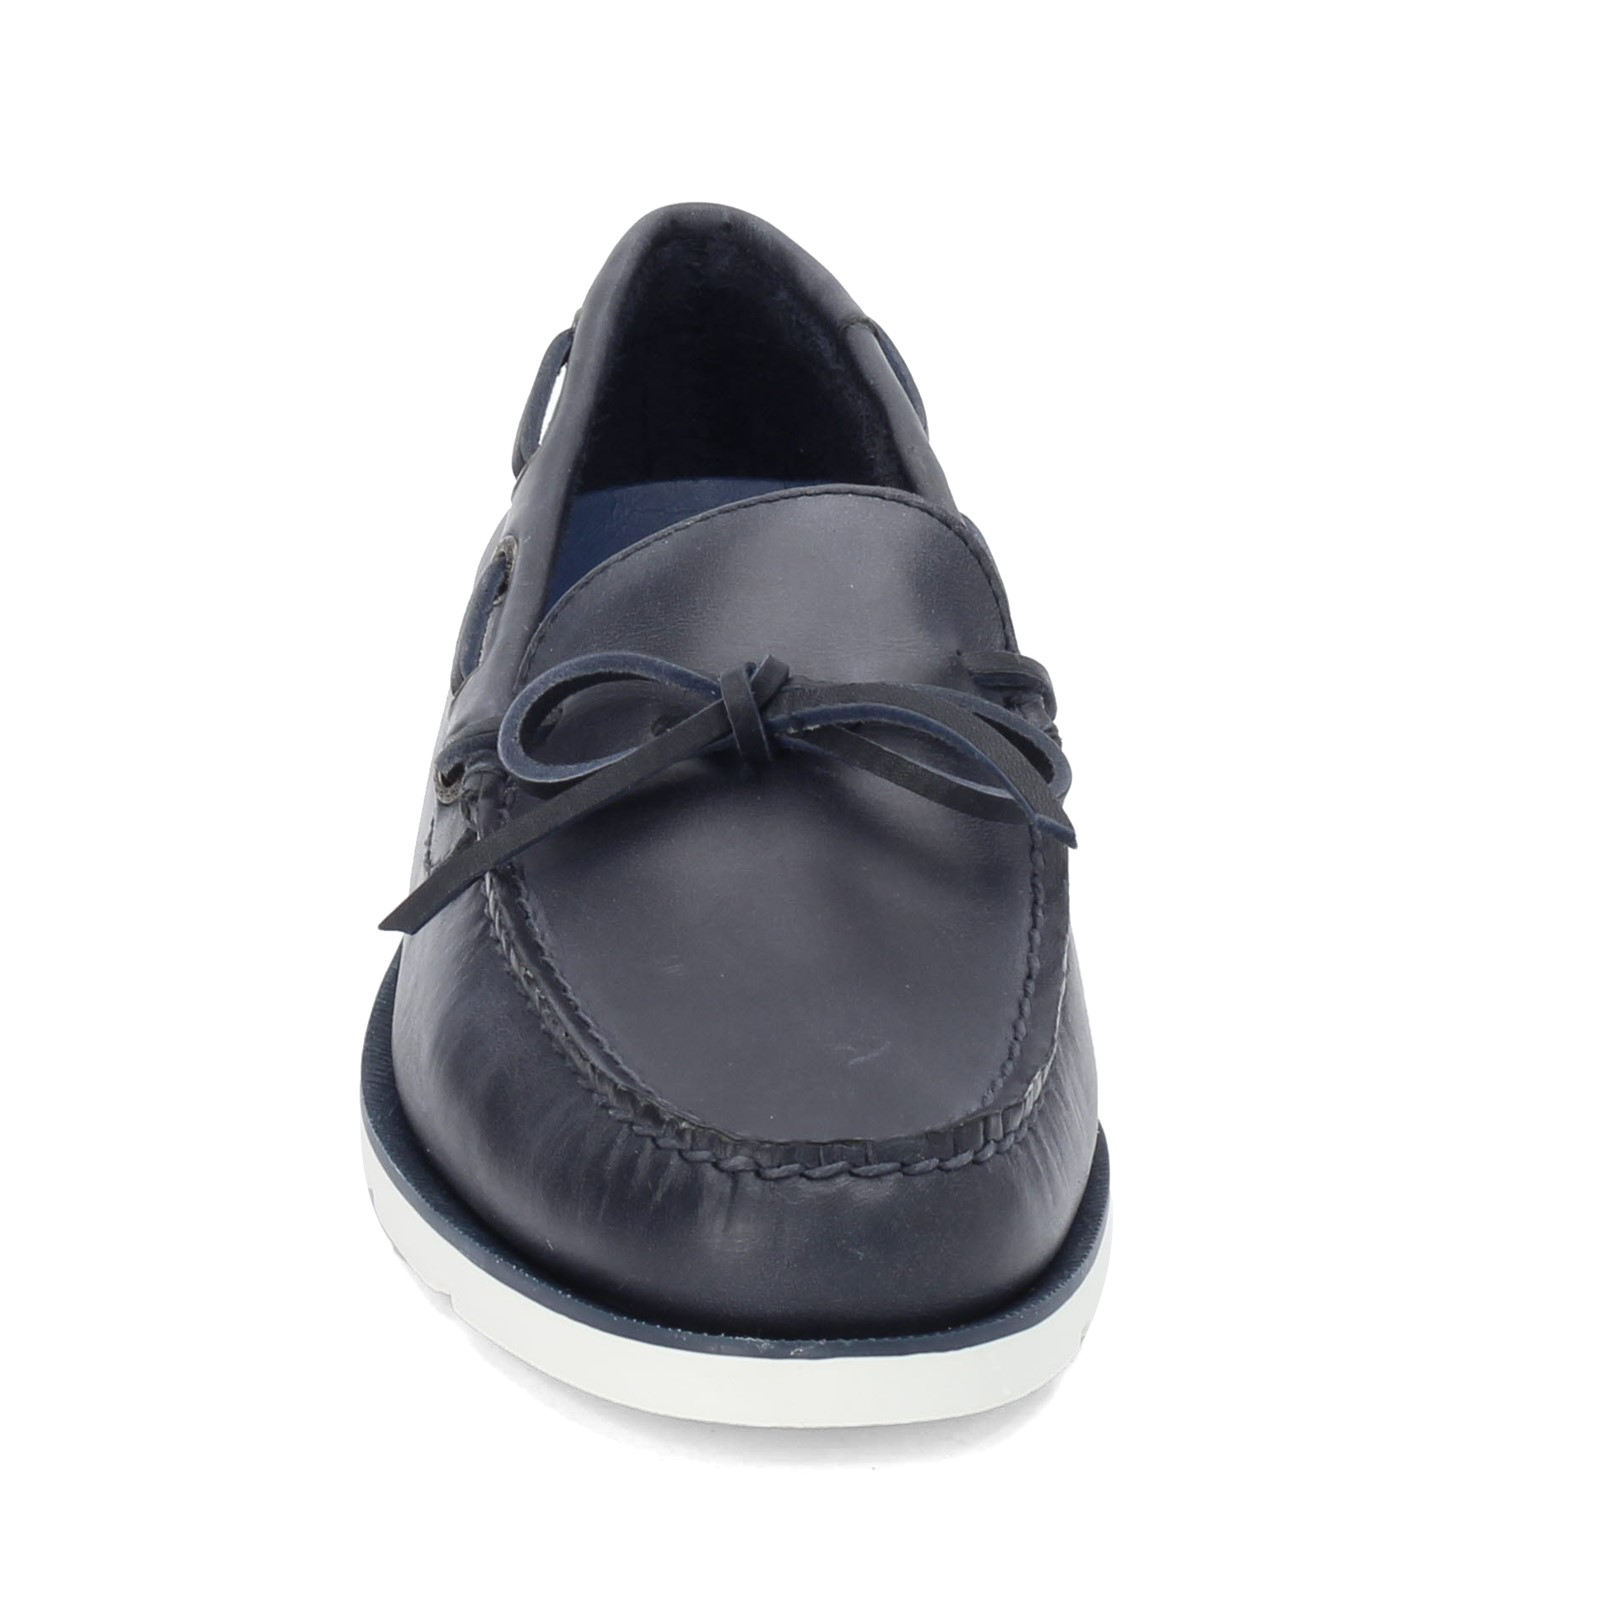 Deb sperry 2 eye boat shoe wholesale prices